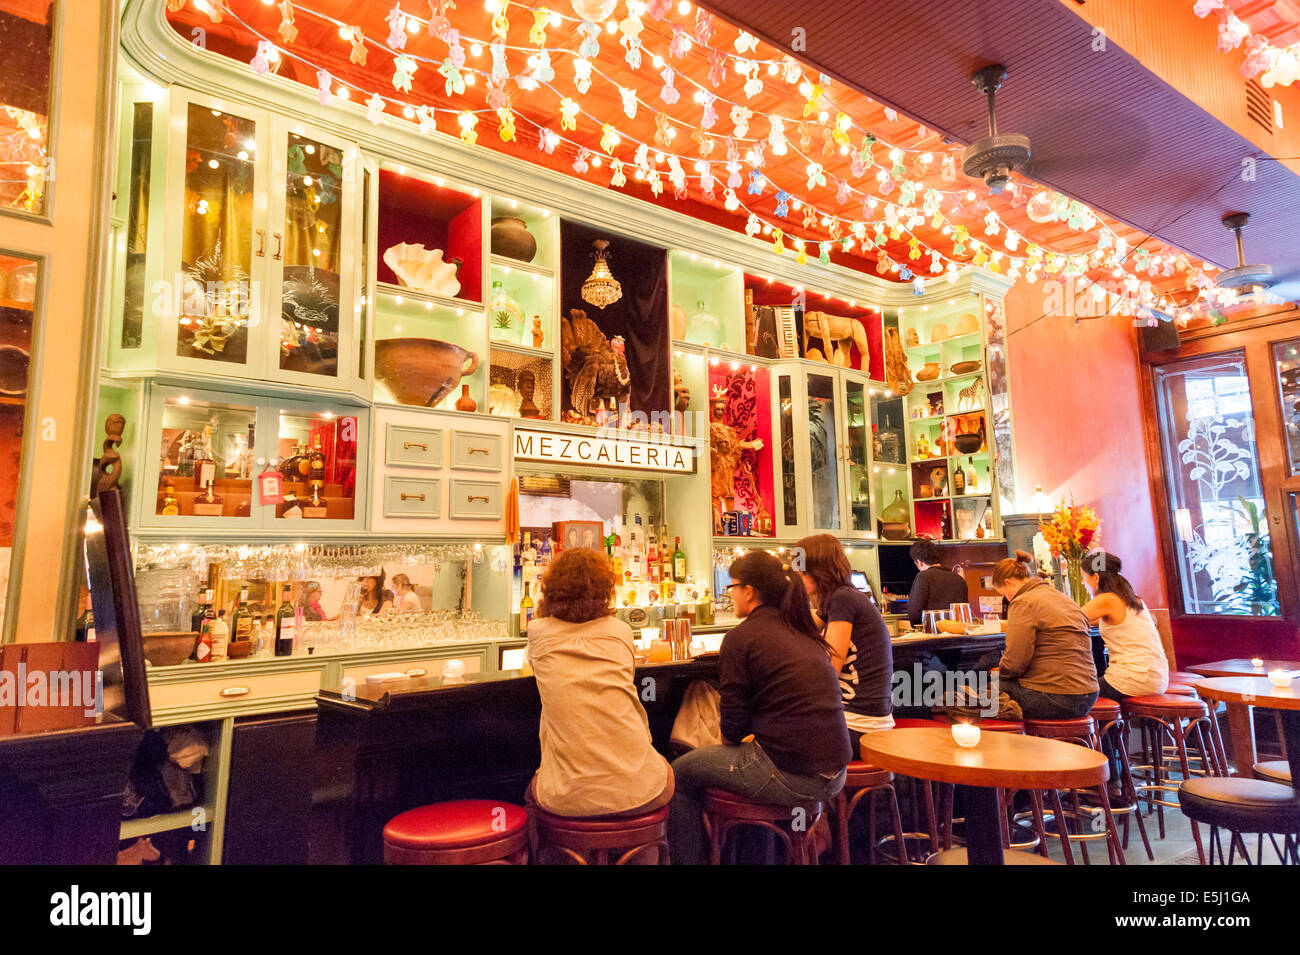 Casa Mezcal in Orchard Street on the Lower East Side New York City Stock Photo 72311130  Alamy